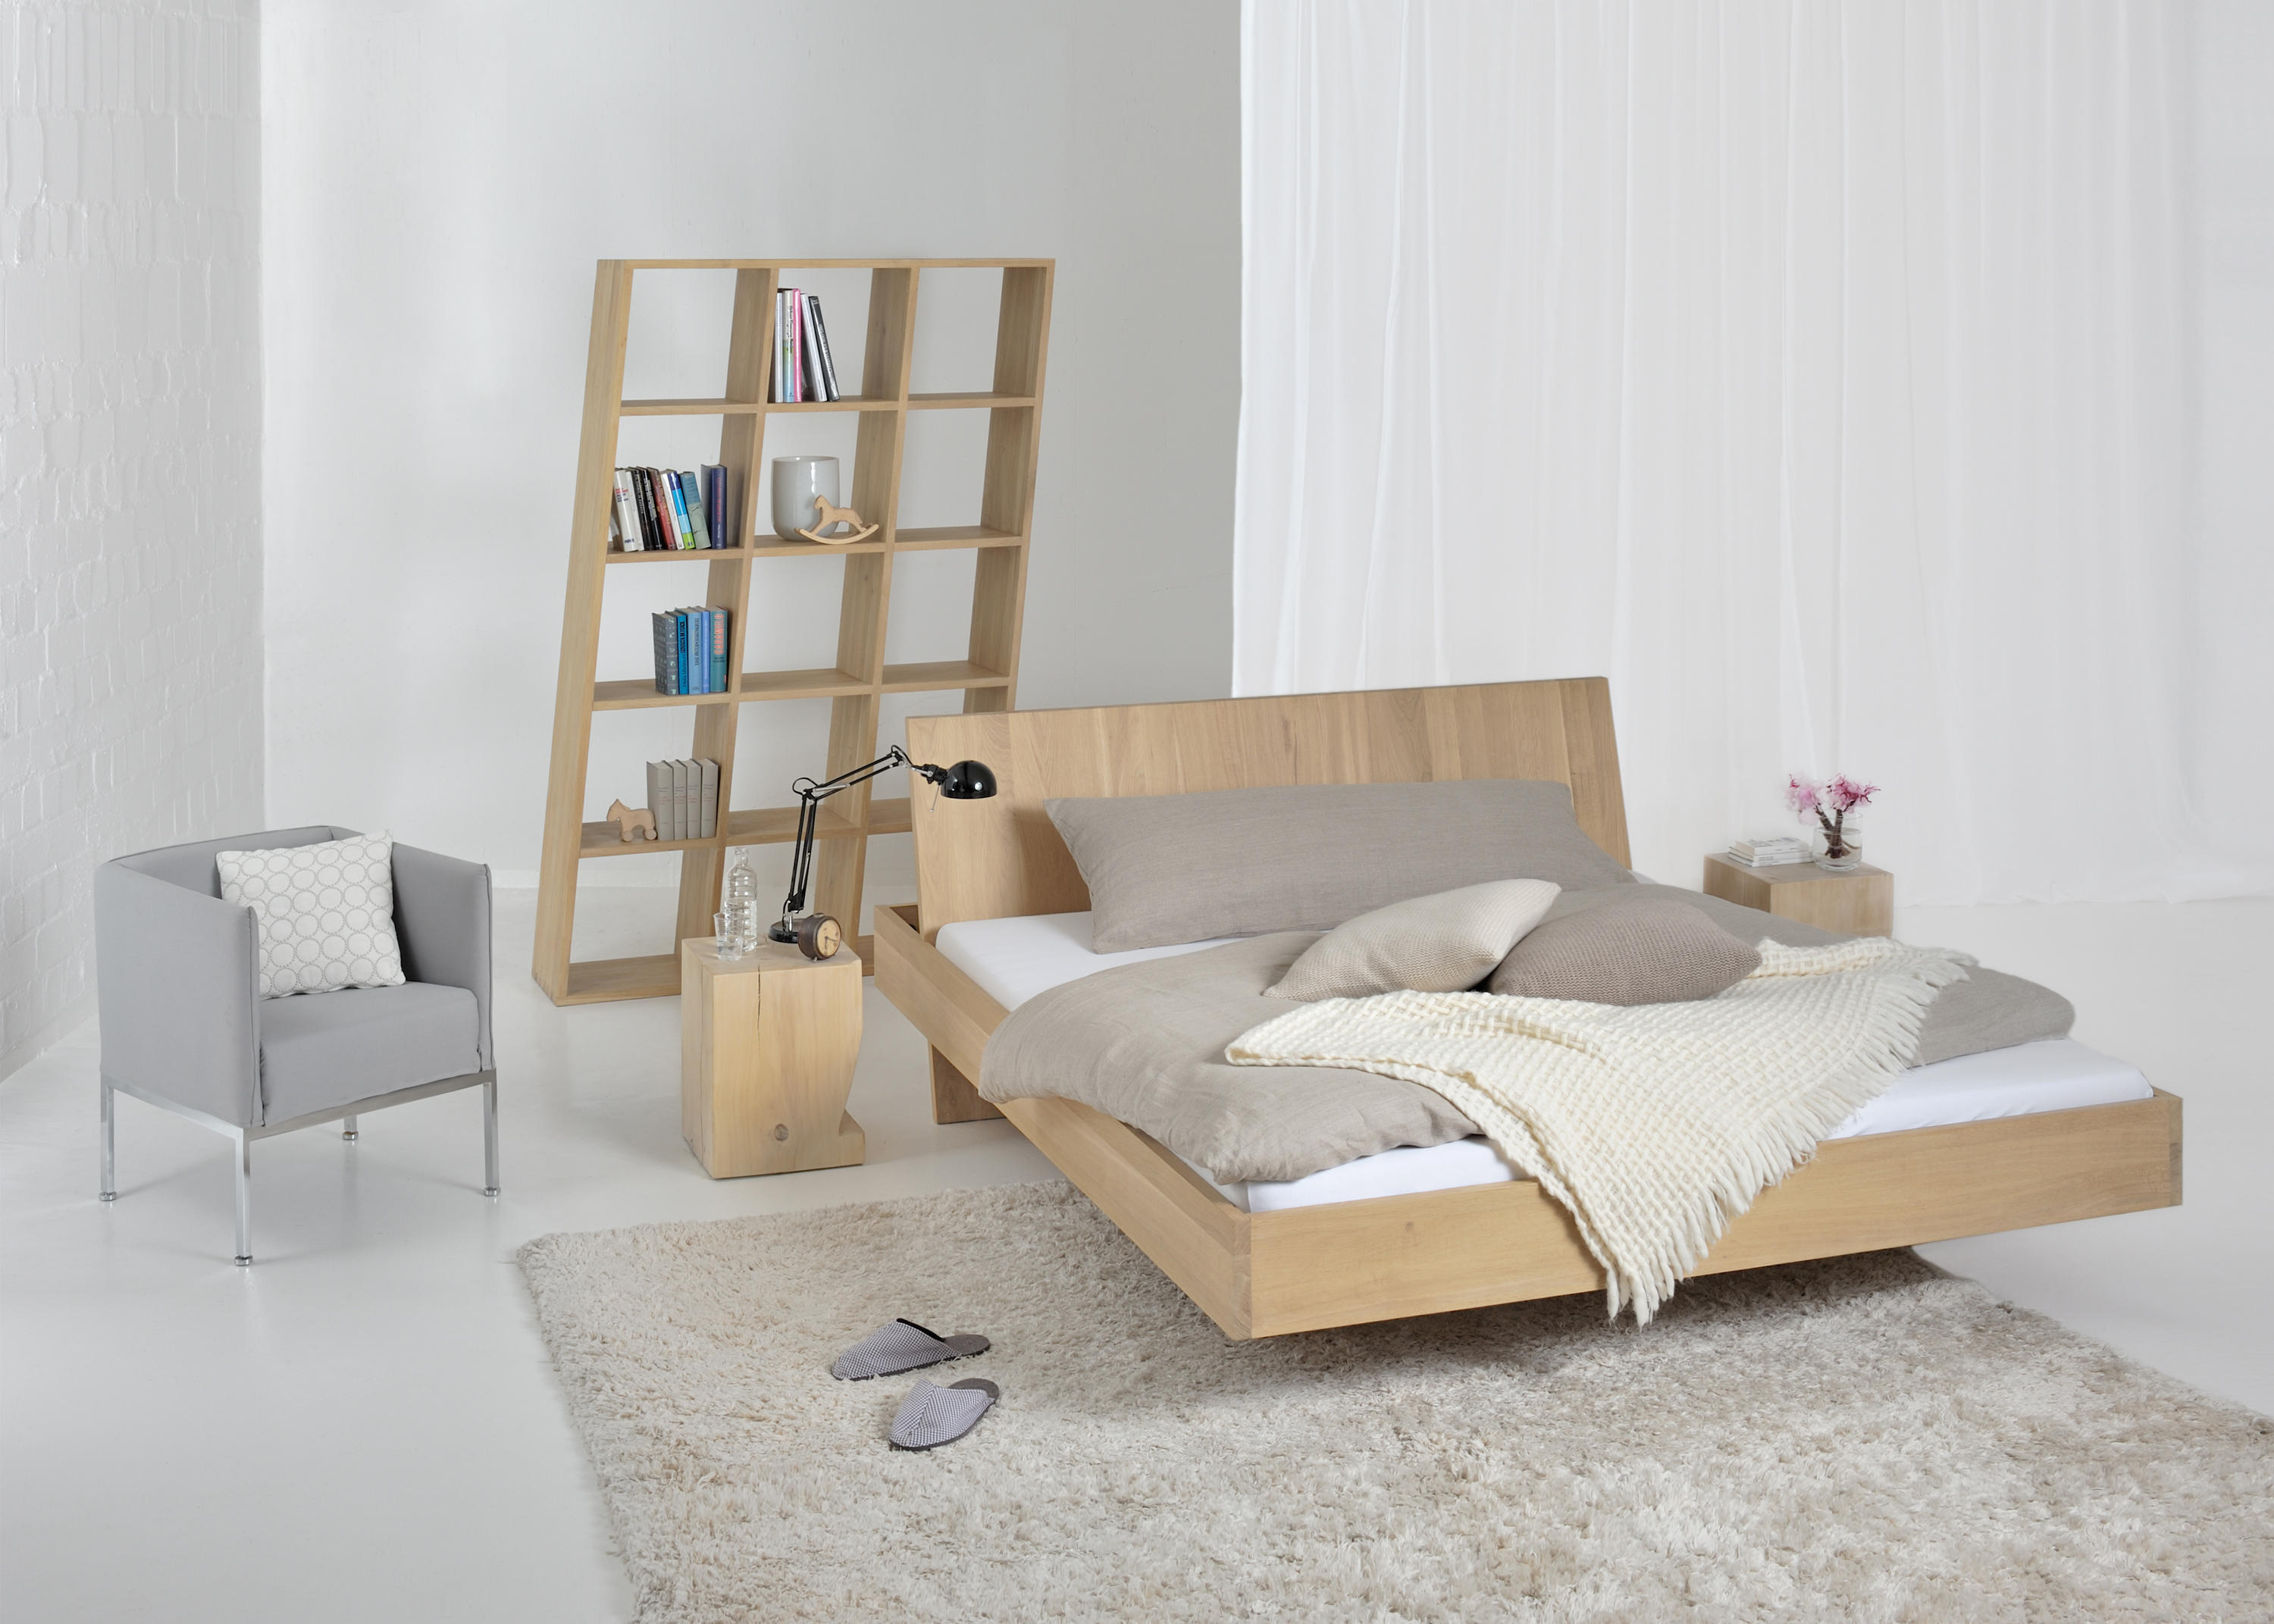 Delightful SOMNIA Bed By Vitamin Design ... Good Looking